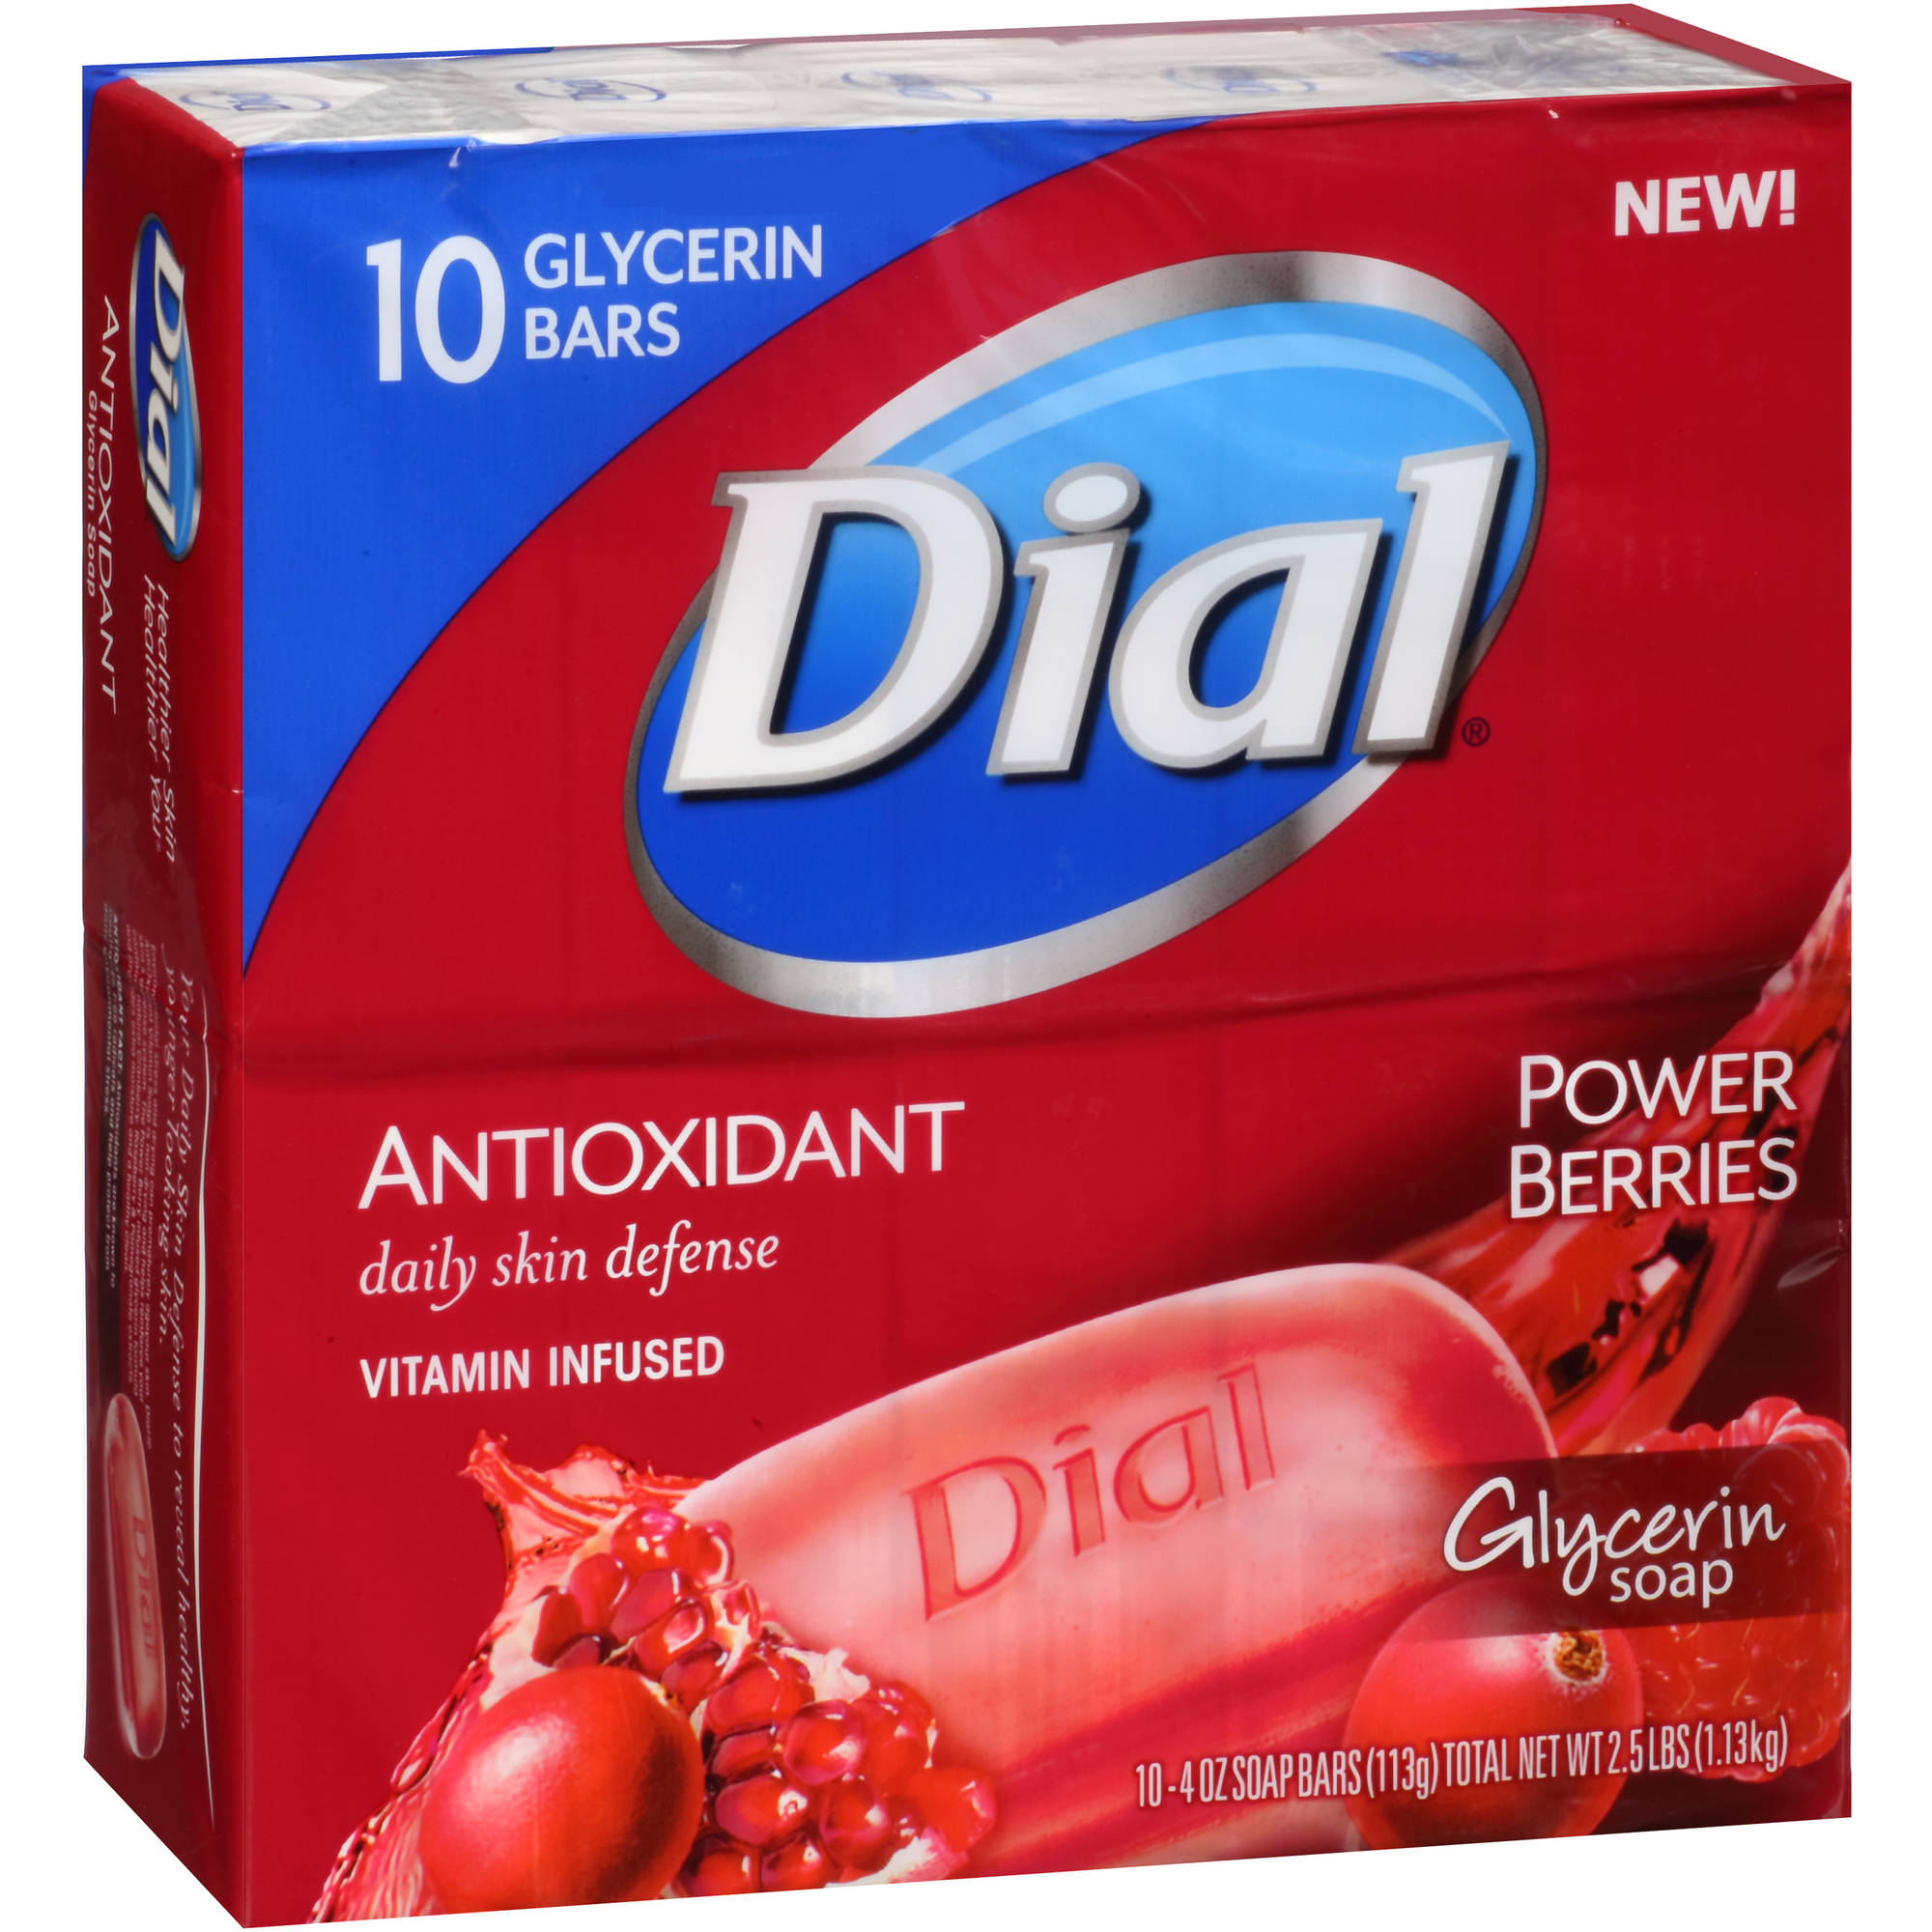 Dial Antioxidant Power Berries Glycerin Soap, 4 oz, 10 count